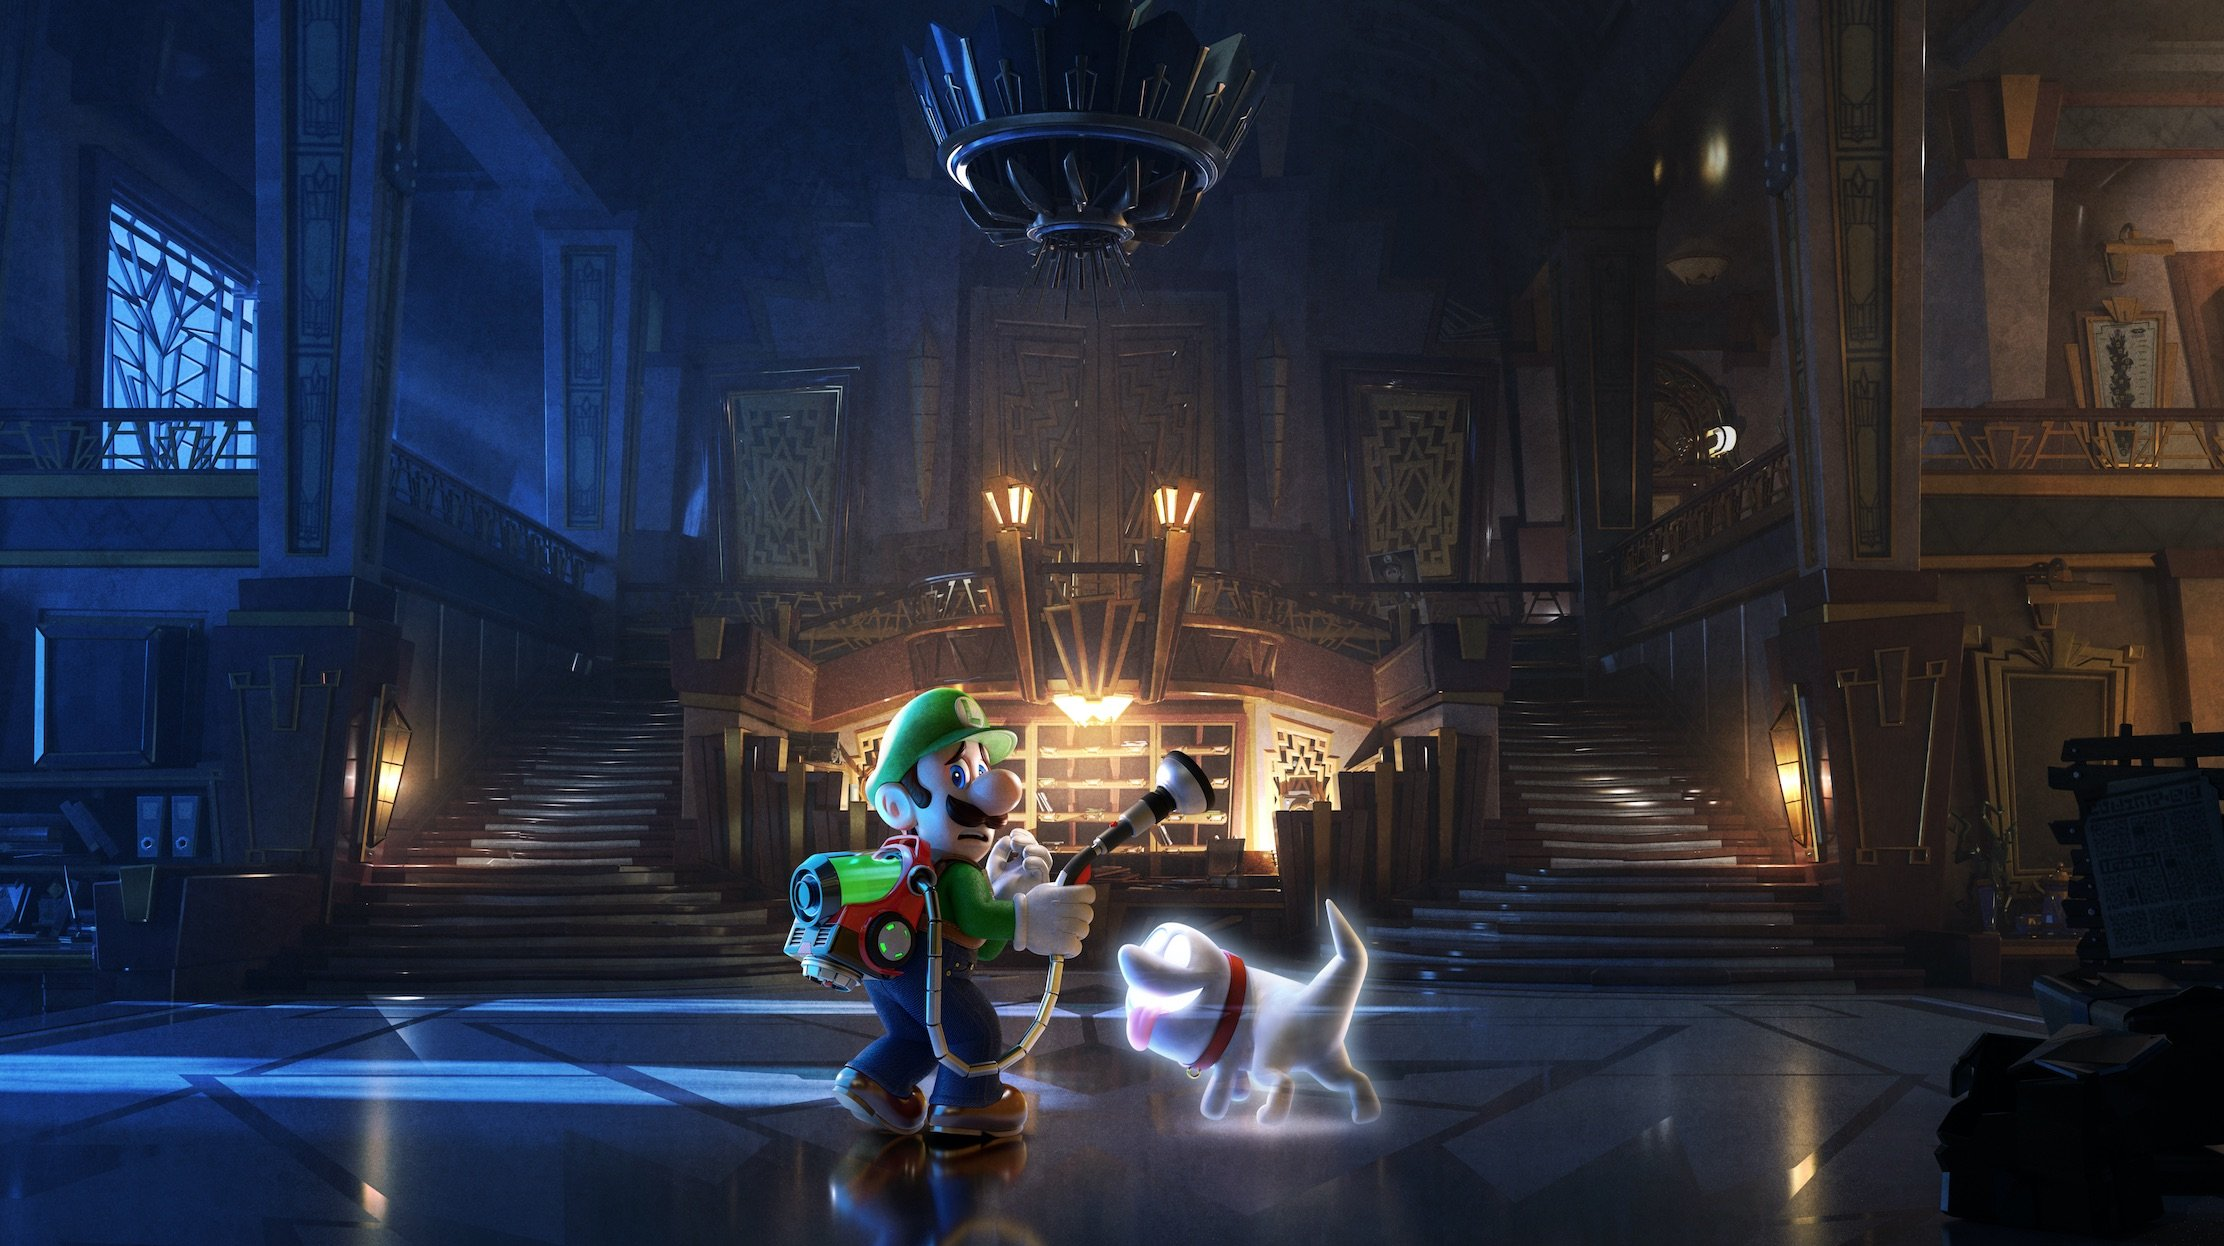 Can't wait to play Luigi's Mansion 3 on the Switch!